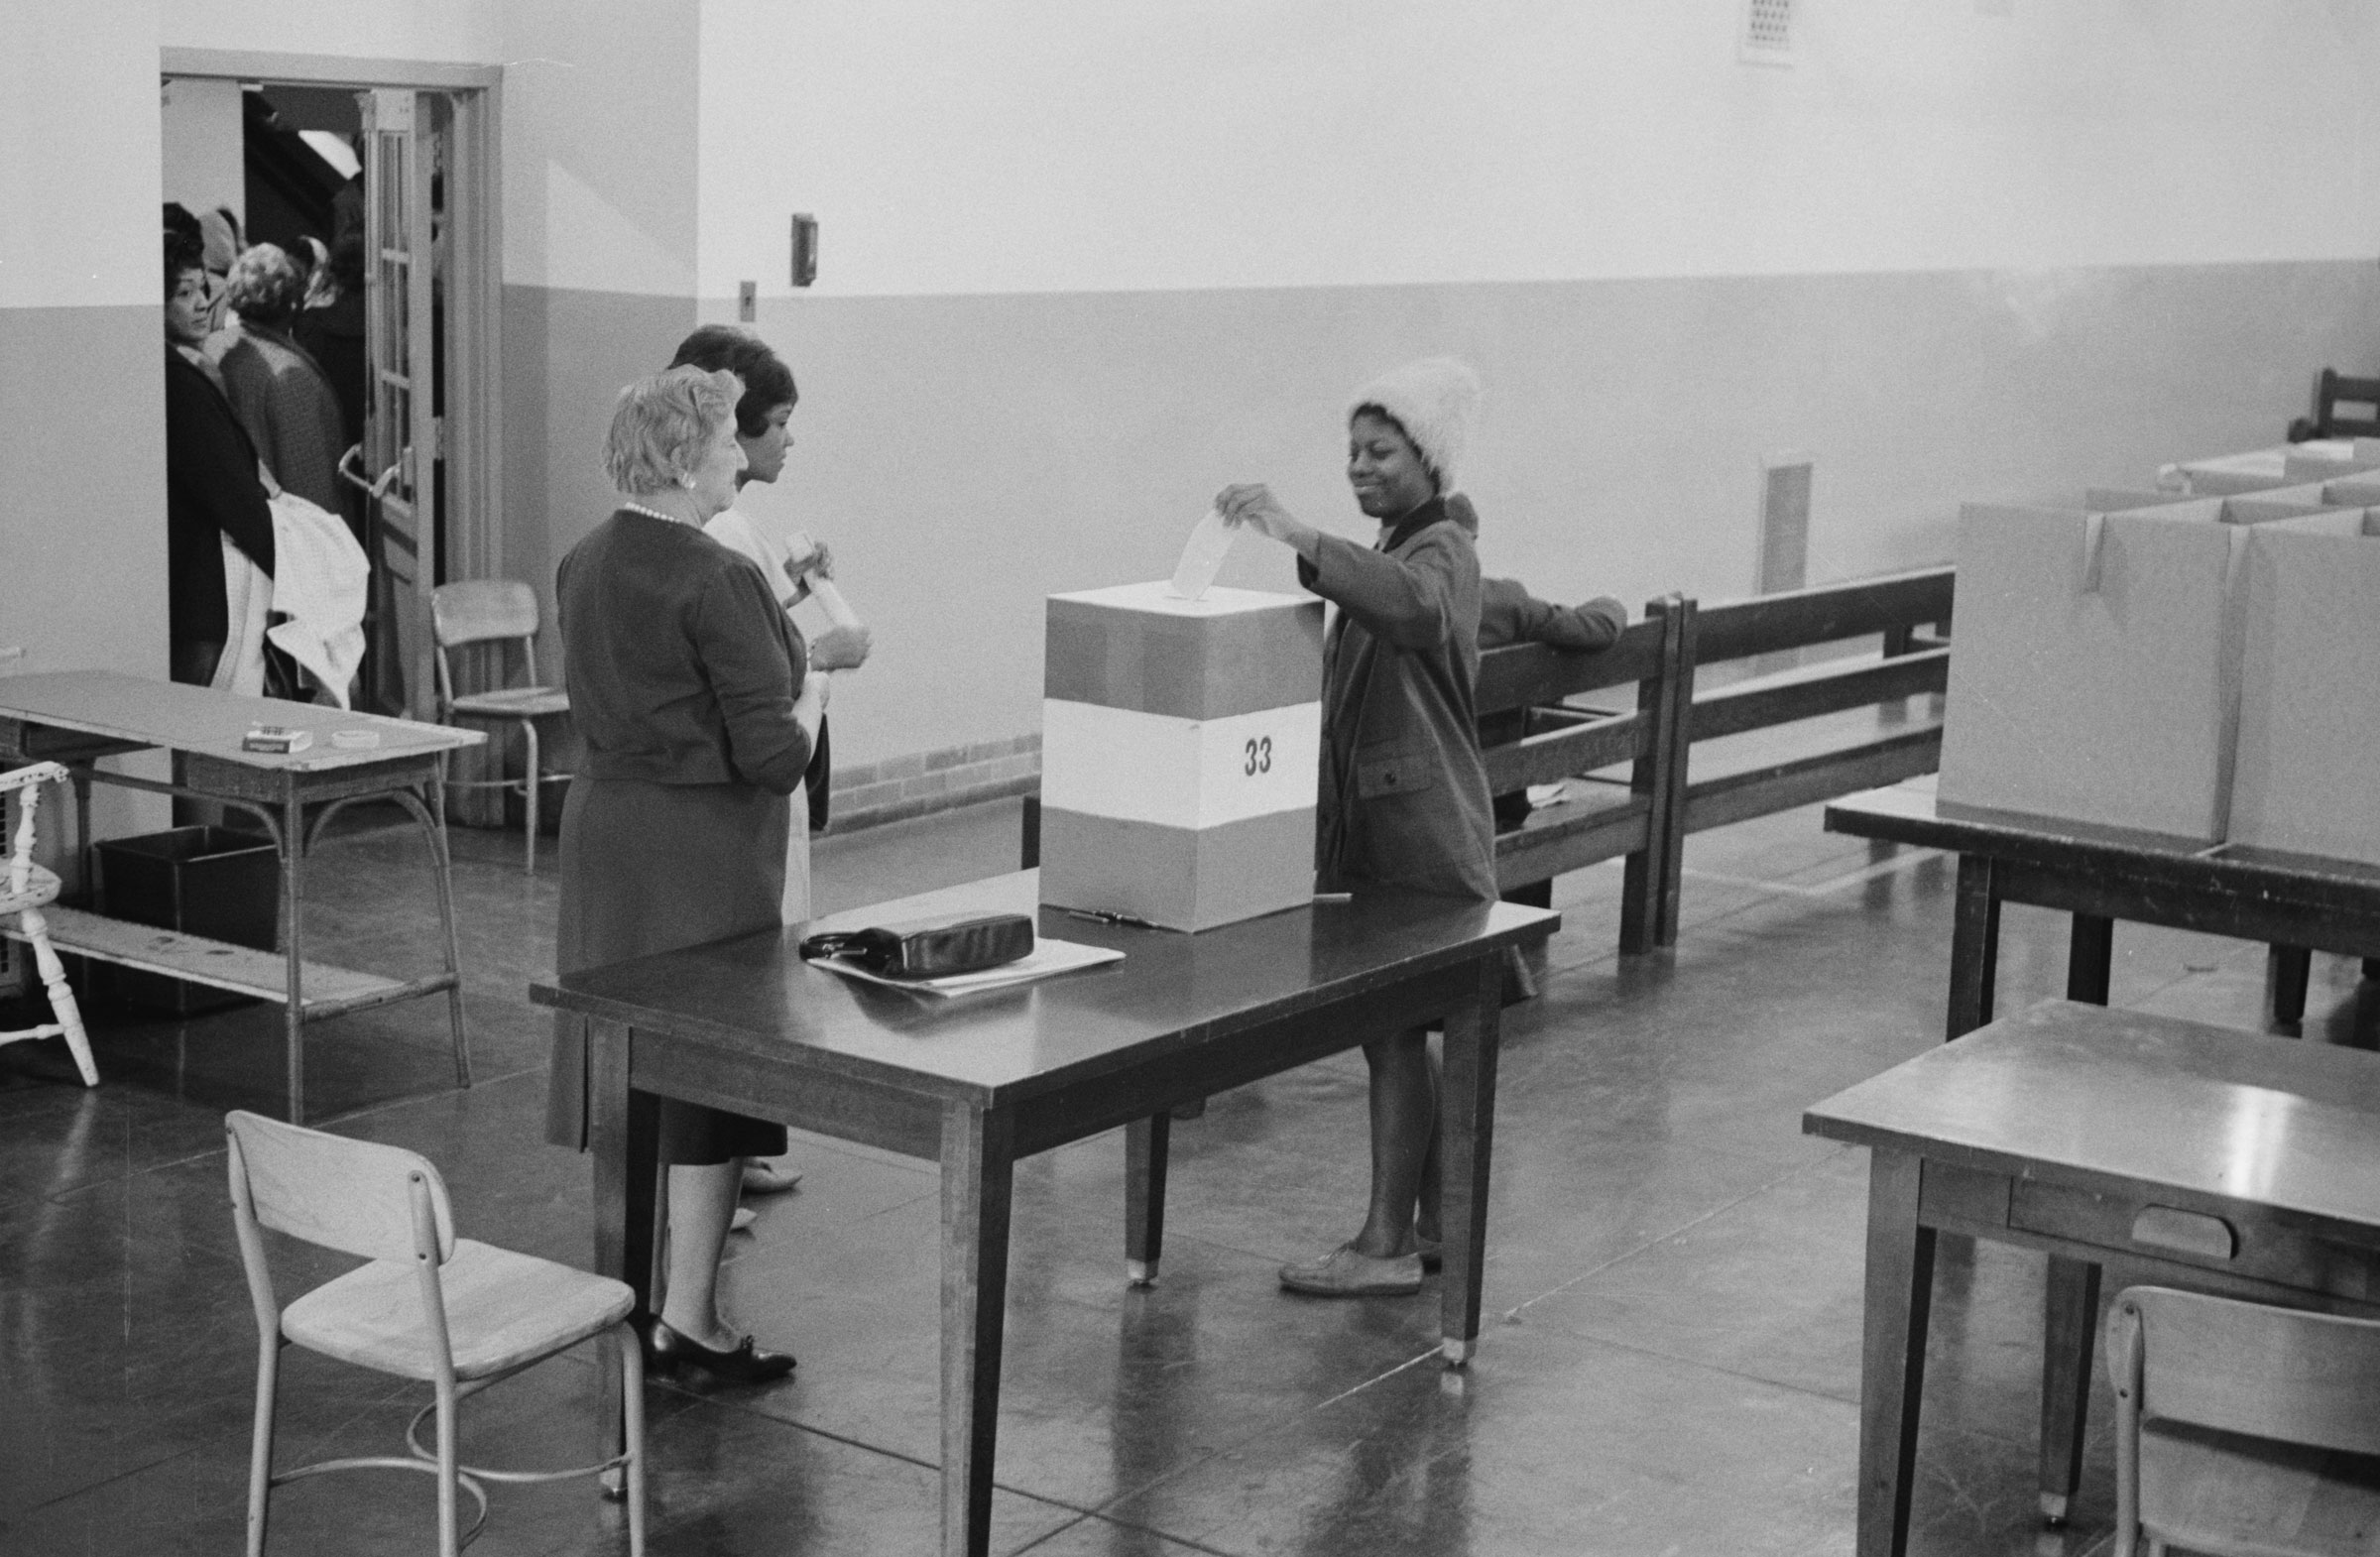 A young woman casts her ballot at Cardoza High School in Washington D.C., in this November 3, 1964 photograph courtesy of the Library of Congress. REUTERS/Library of Congress/Handout via Reuters.